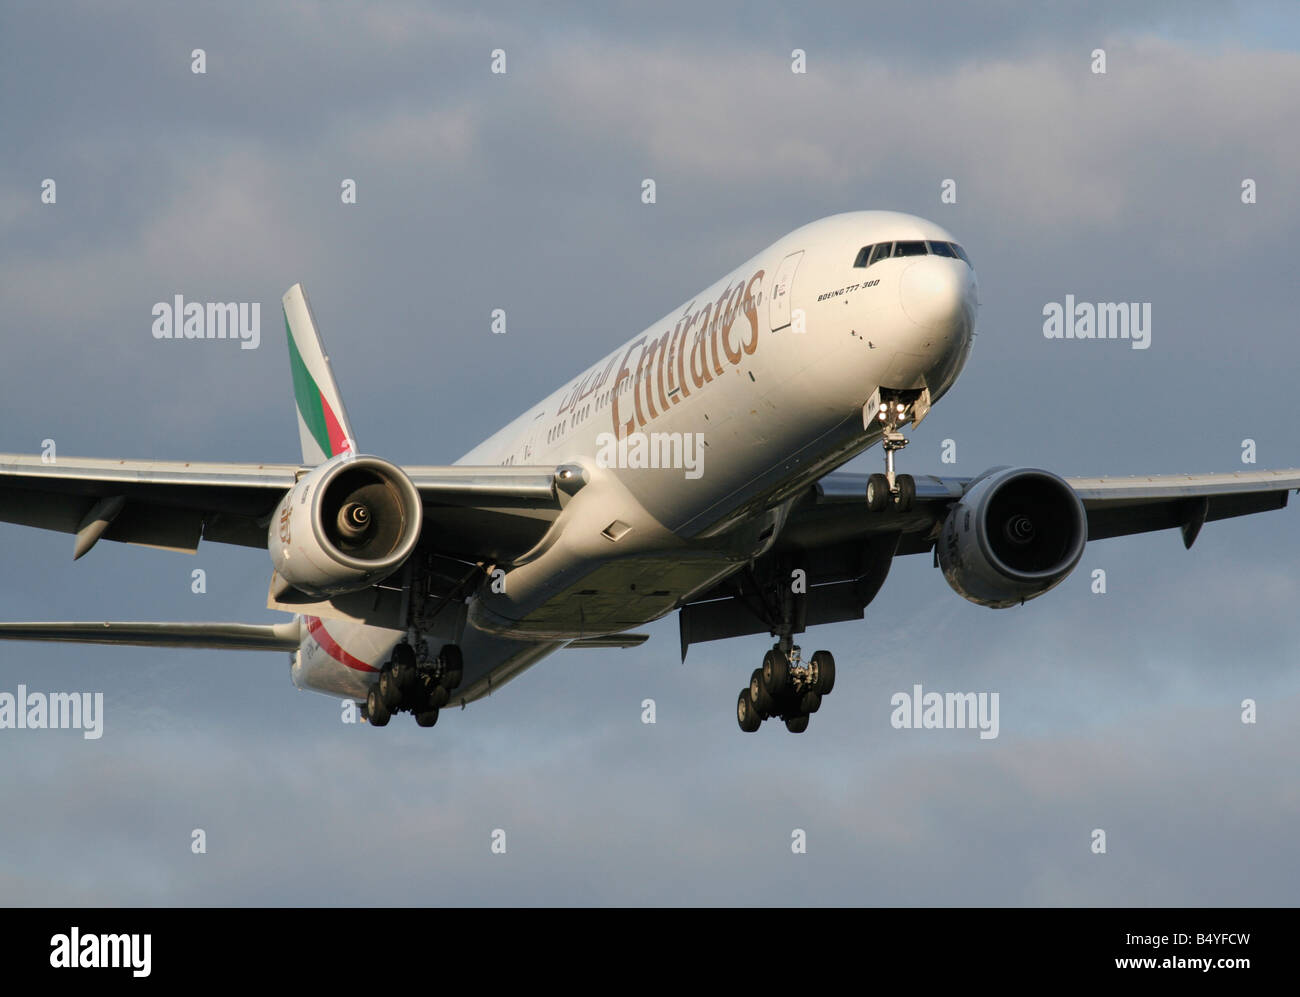 Emirates Boeing 777-300 landing at sunset - Stock Image